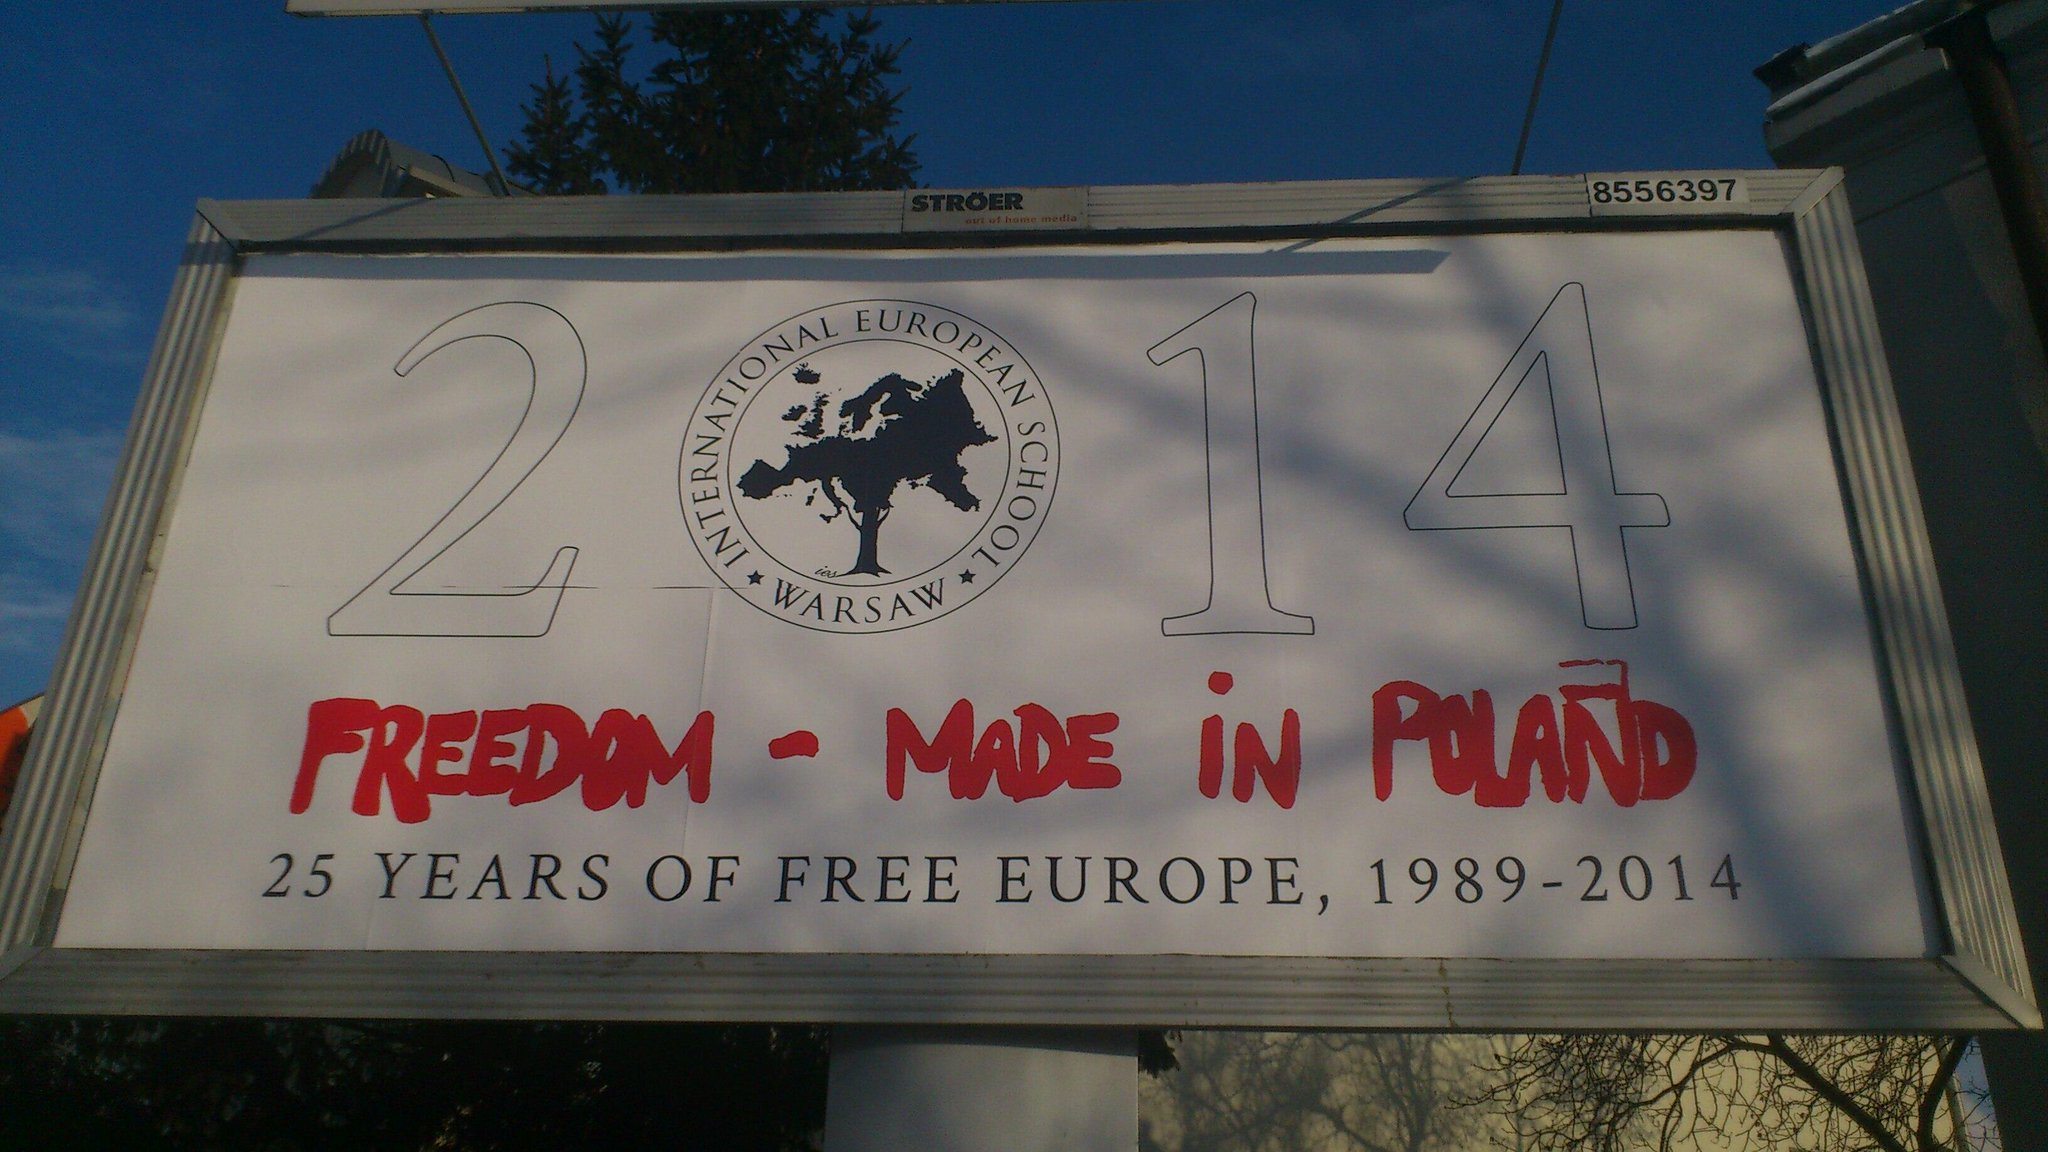 Twitter / safianik: Saw this in Warsaw this morning ...